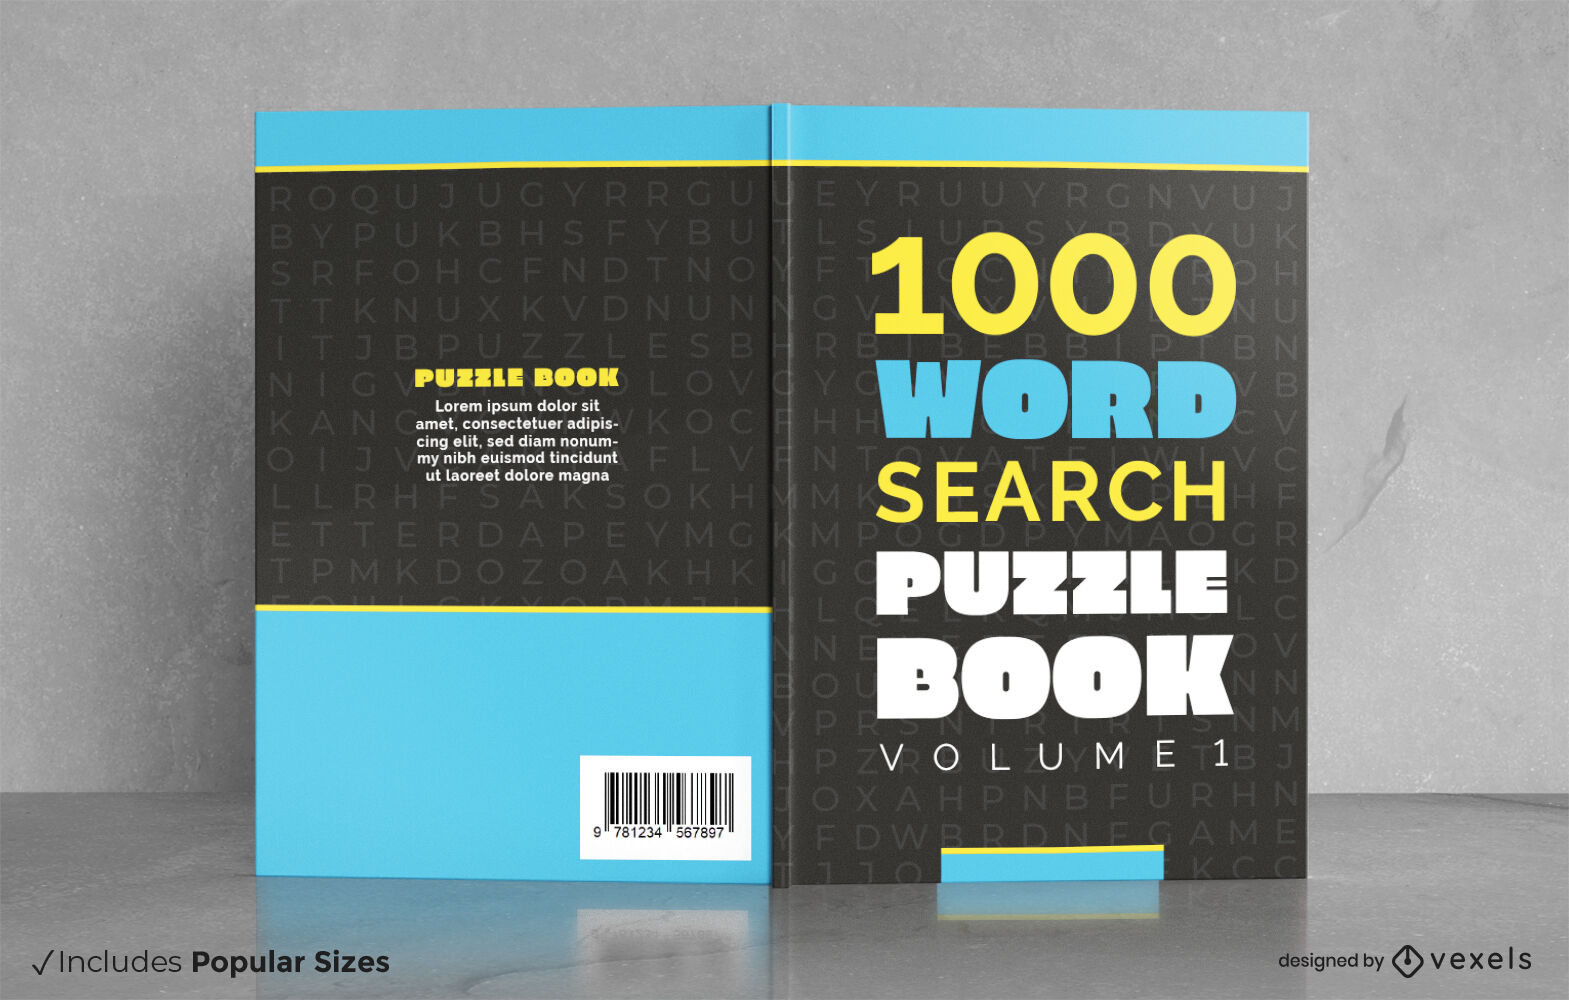 Cool word search puzzles book cover design